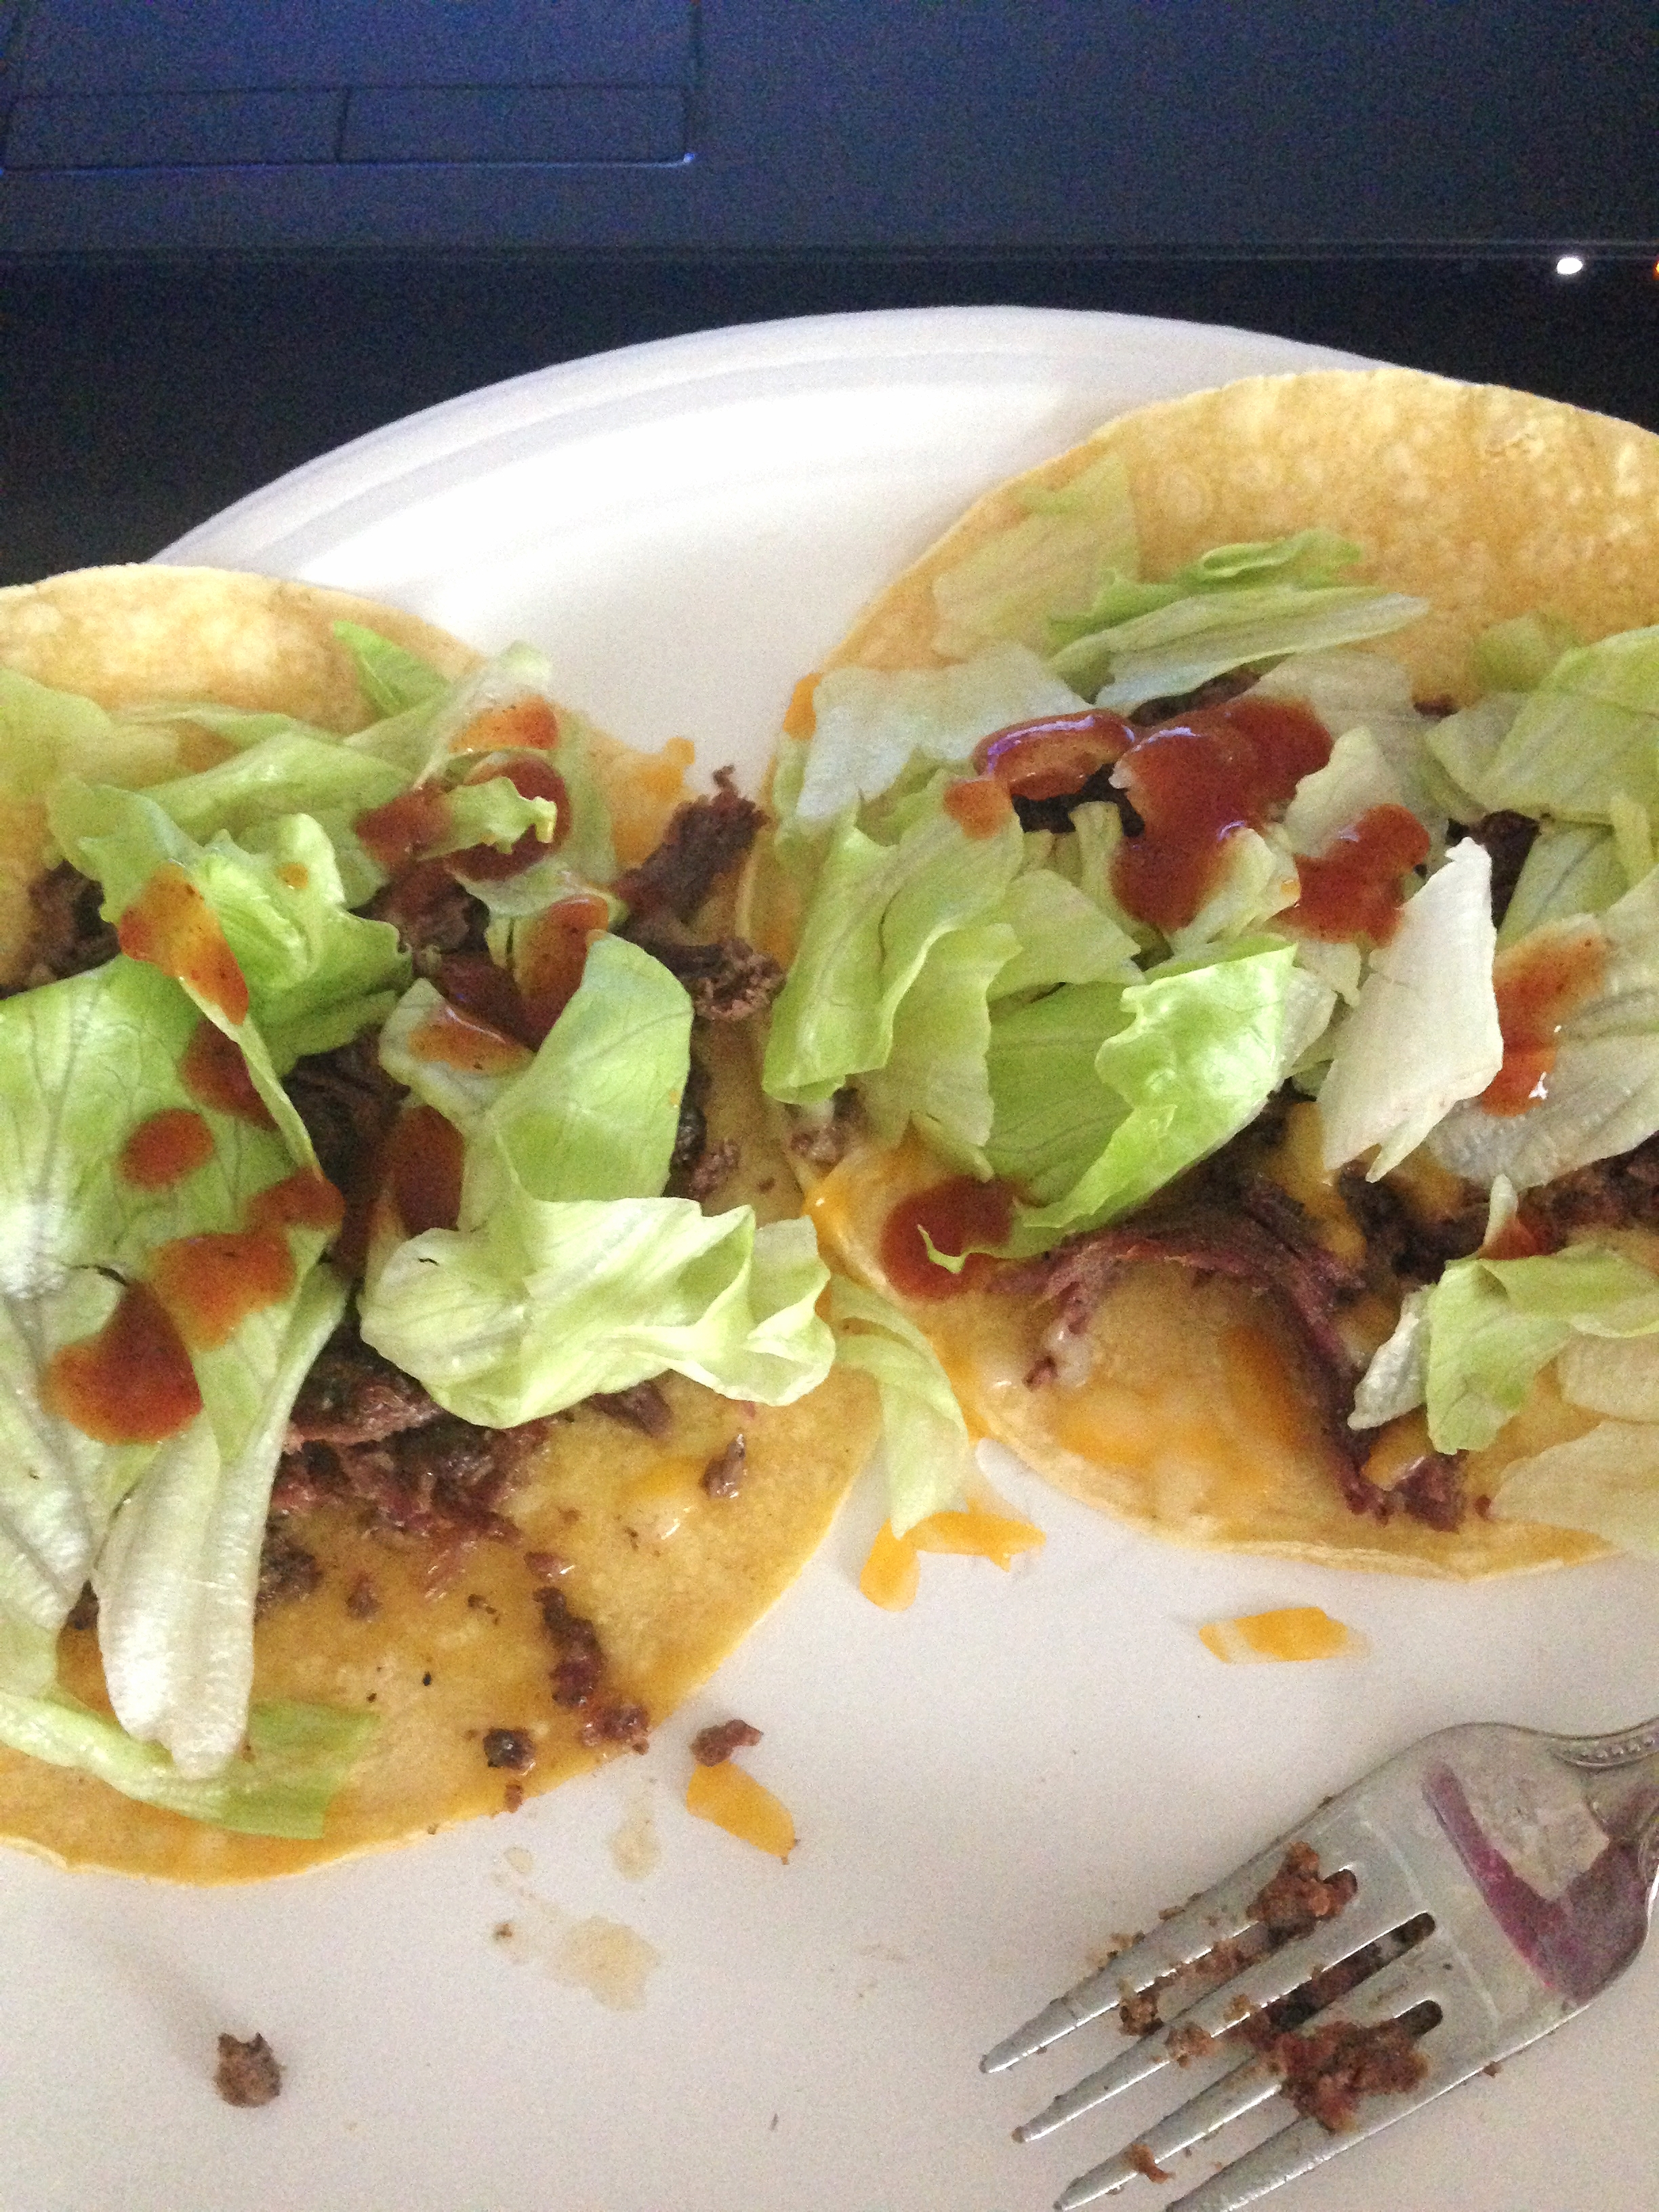 Lunch: Corn Tortillas, Shredded Beef, Iceberg Lettuce and Hot Sauce